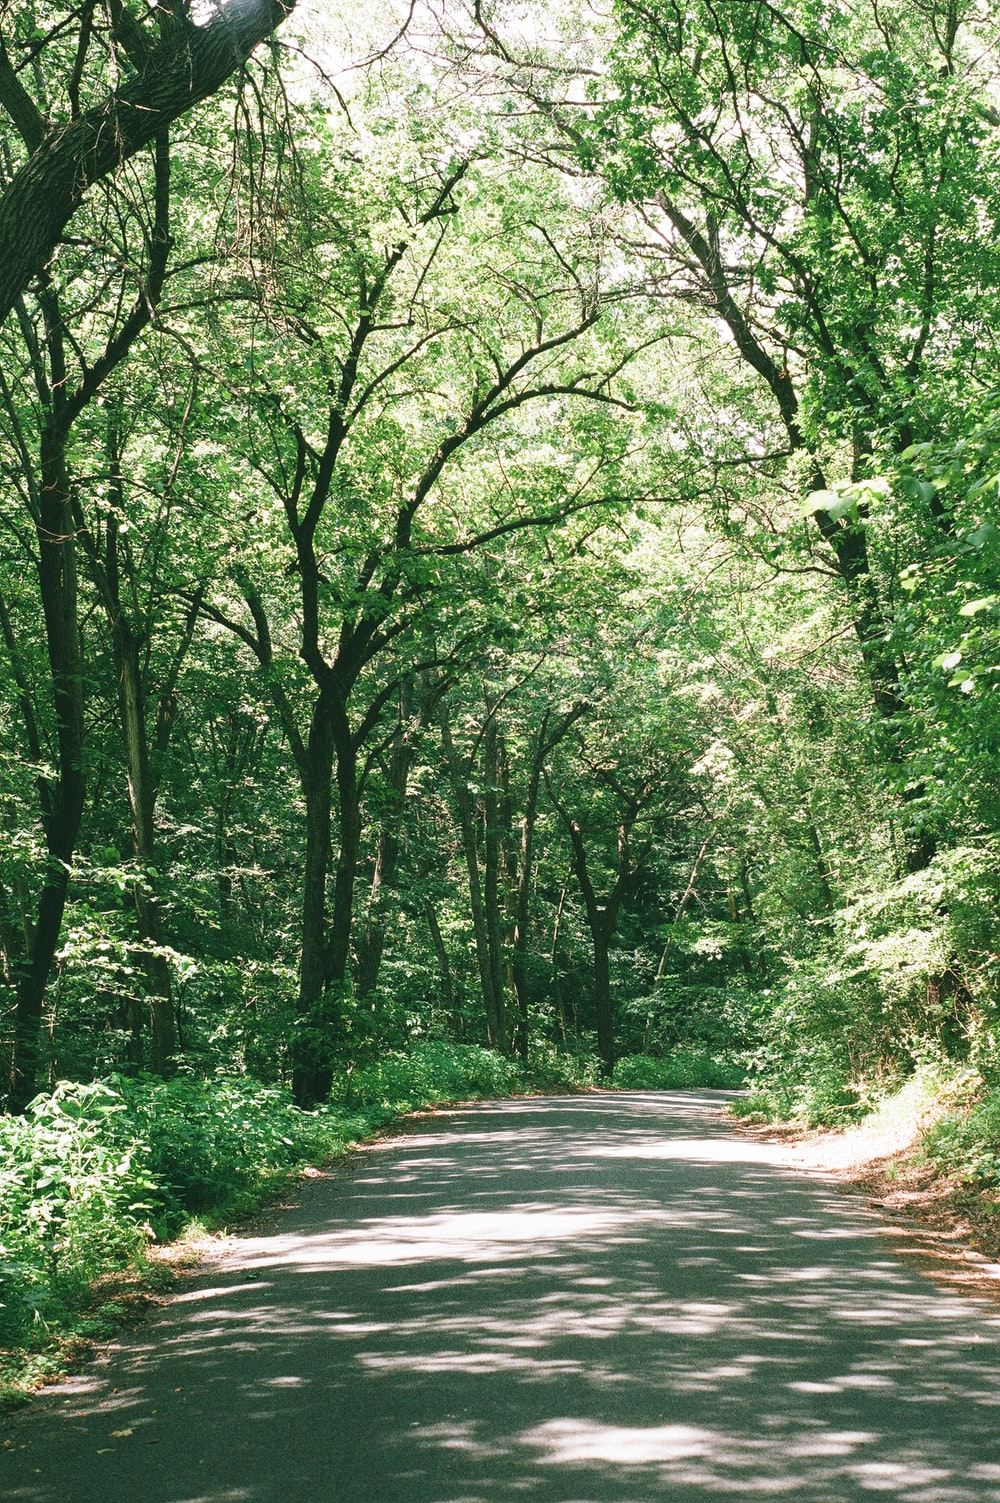 gray concrete road in between green trees during daytime